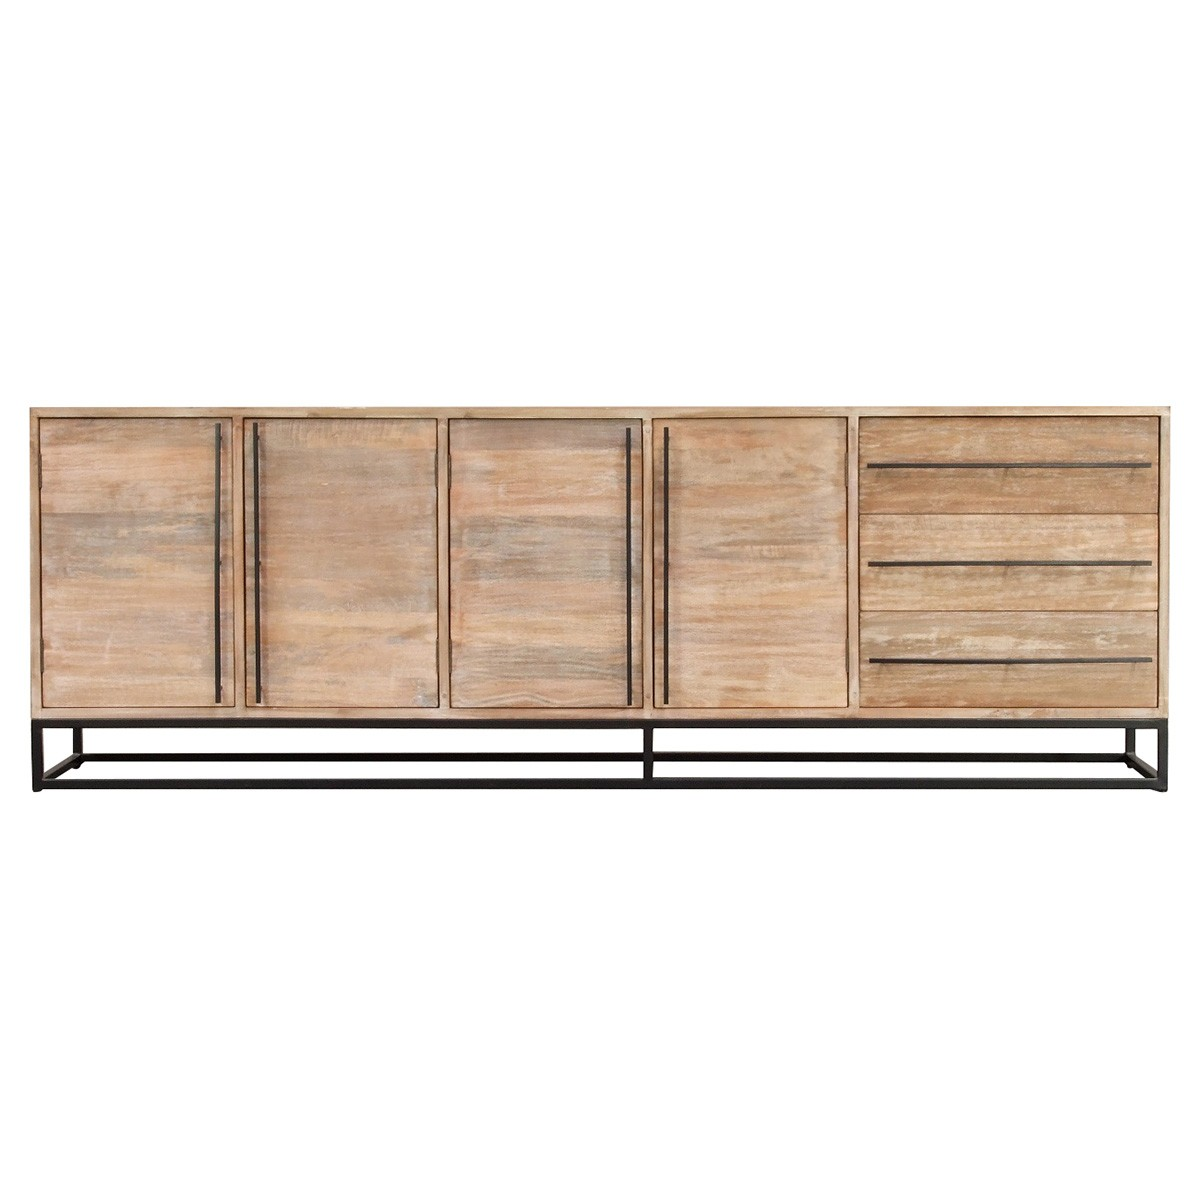 Pontons Mango Wood 4 Door 3 Drawer Sideboard, 230cm-I